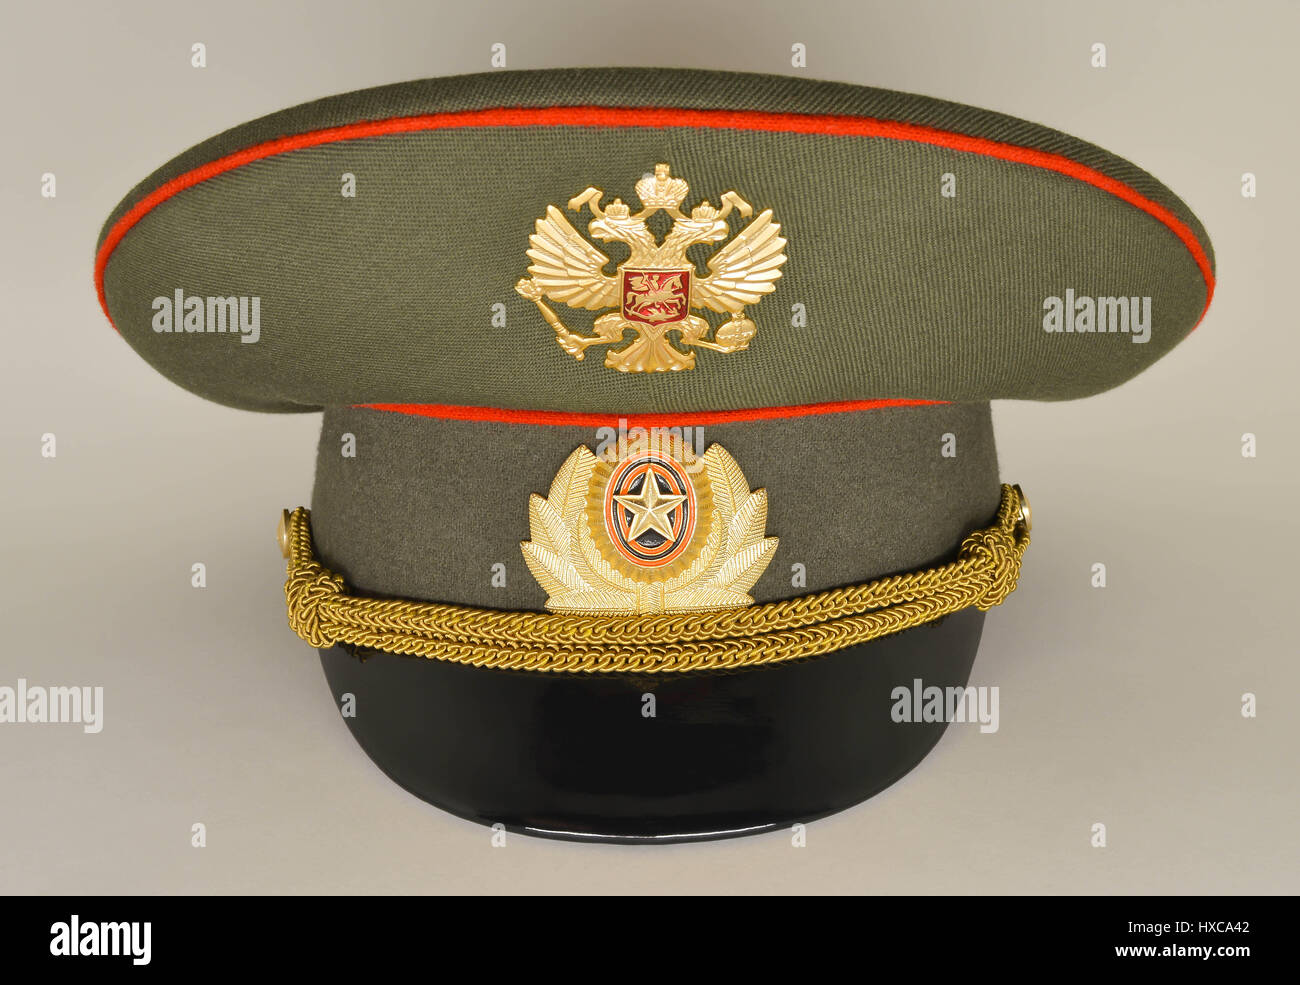 180e04ab8eb01 Russian army military officer cap Stock Photo: 136725010 - Alamy